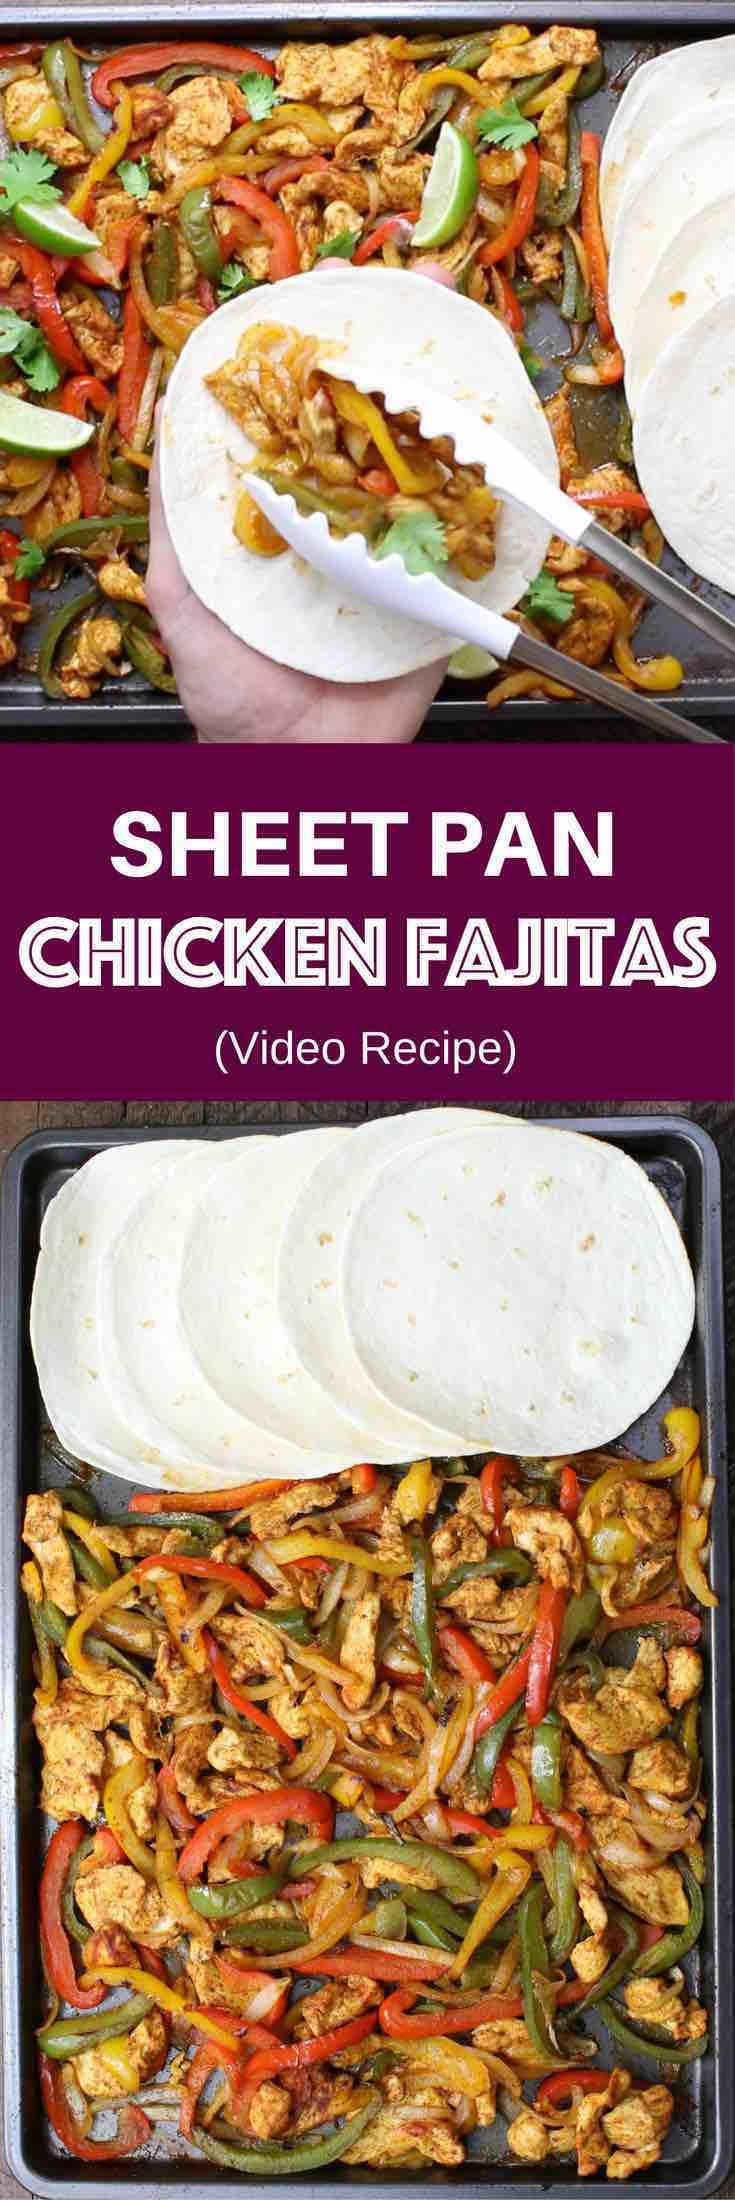 Chicken Fajita One Of The Easiest Healthy Dinner Recipes Yellow Red And Green Pepper Easy Healthy Dinners Healthy Dinner Recipes Easy Baked Chicken Fajitas